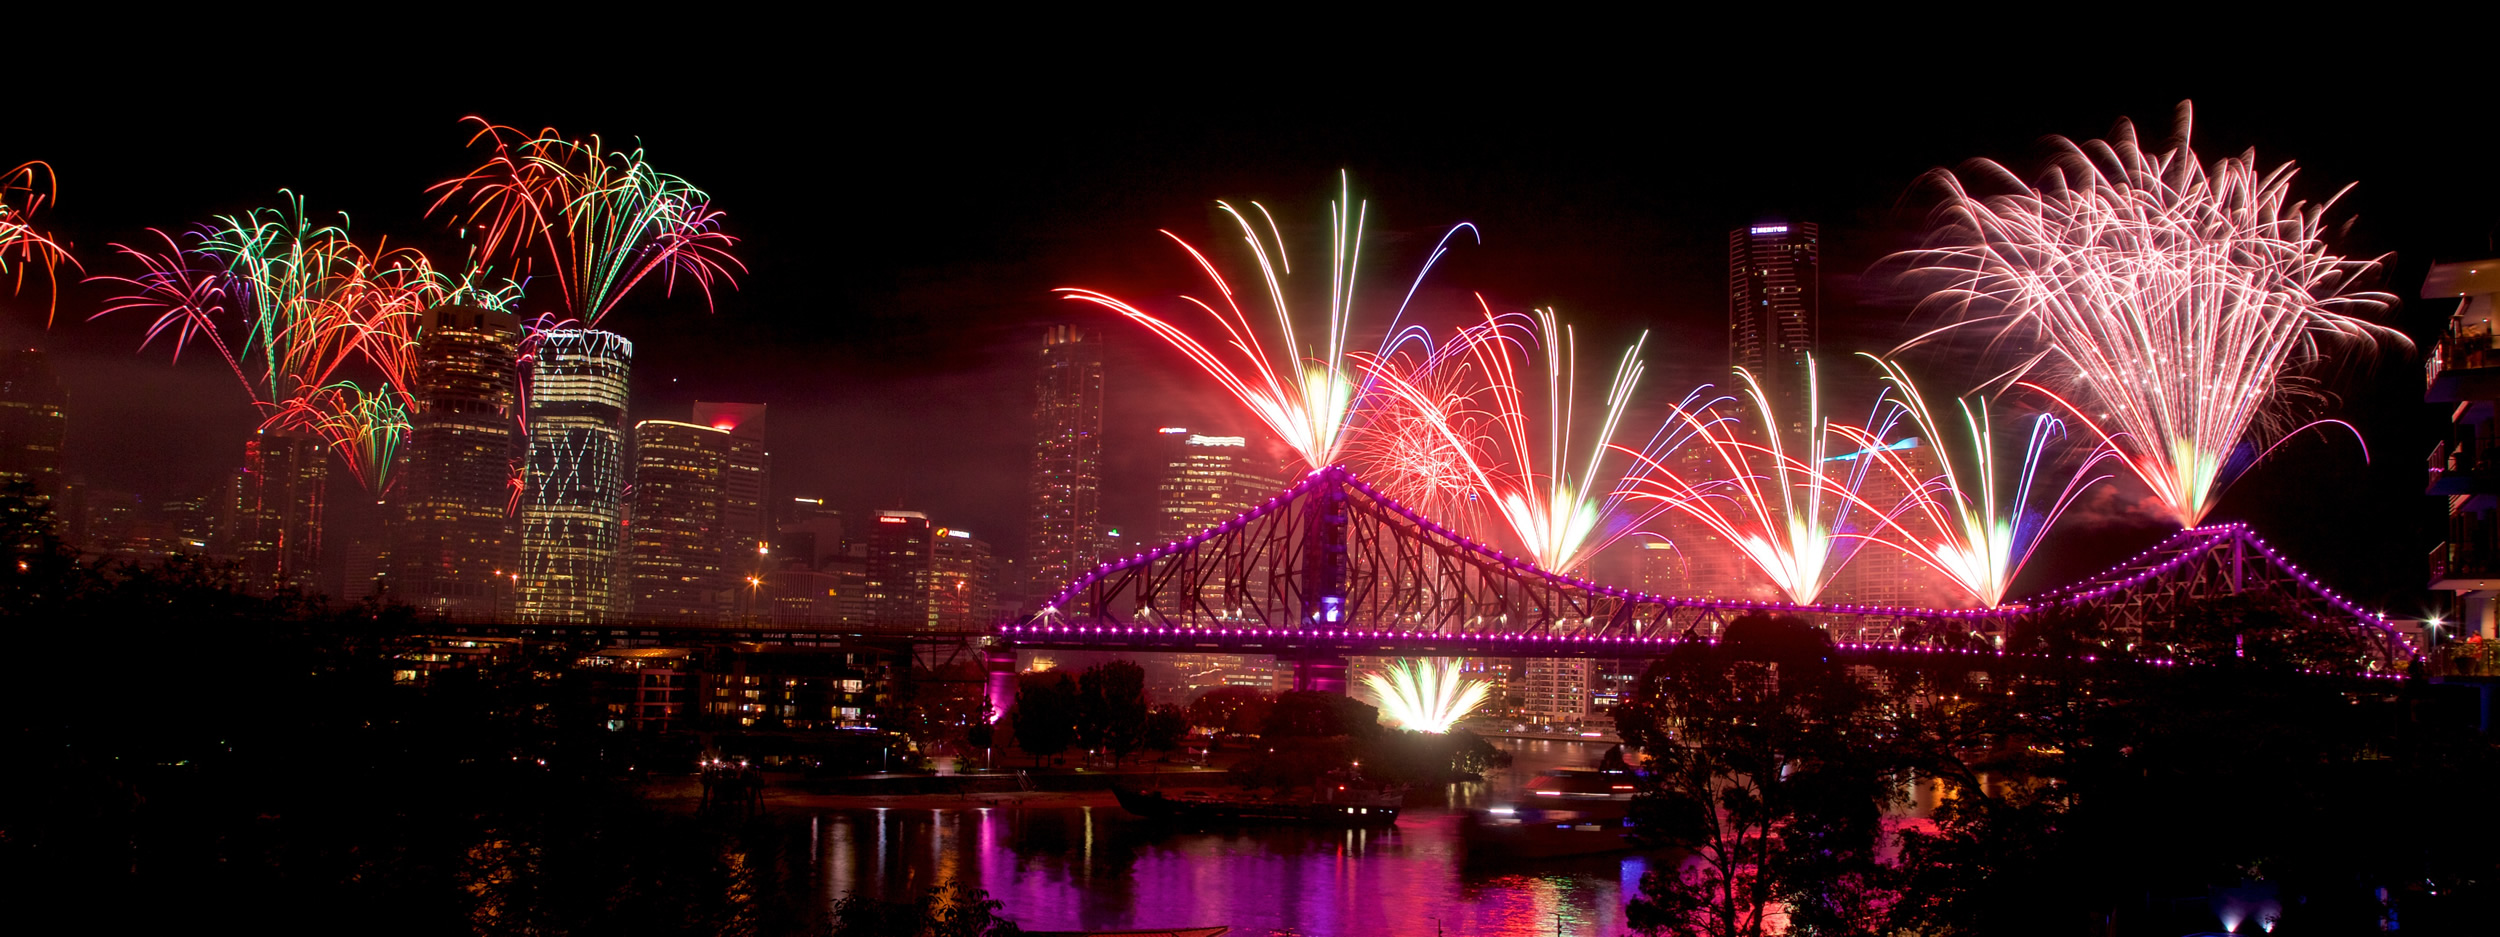 Riverfire fireworks display